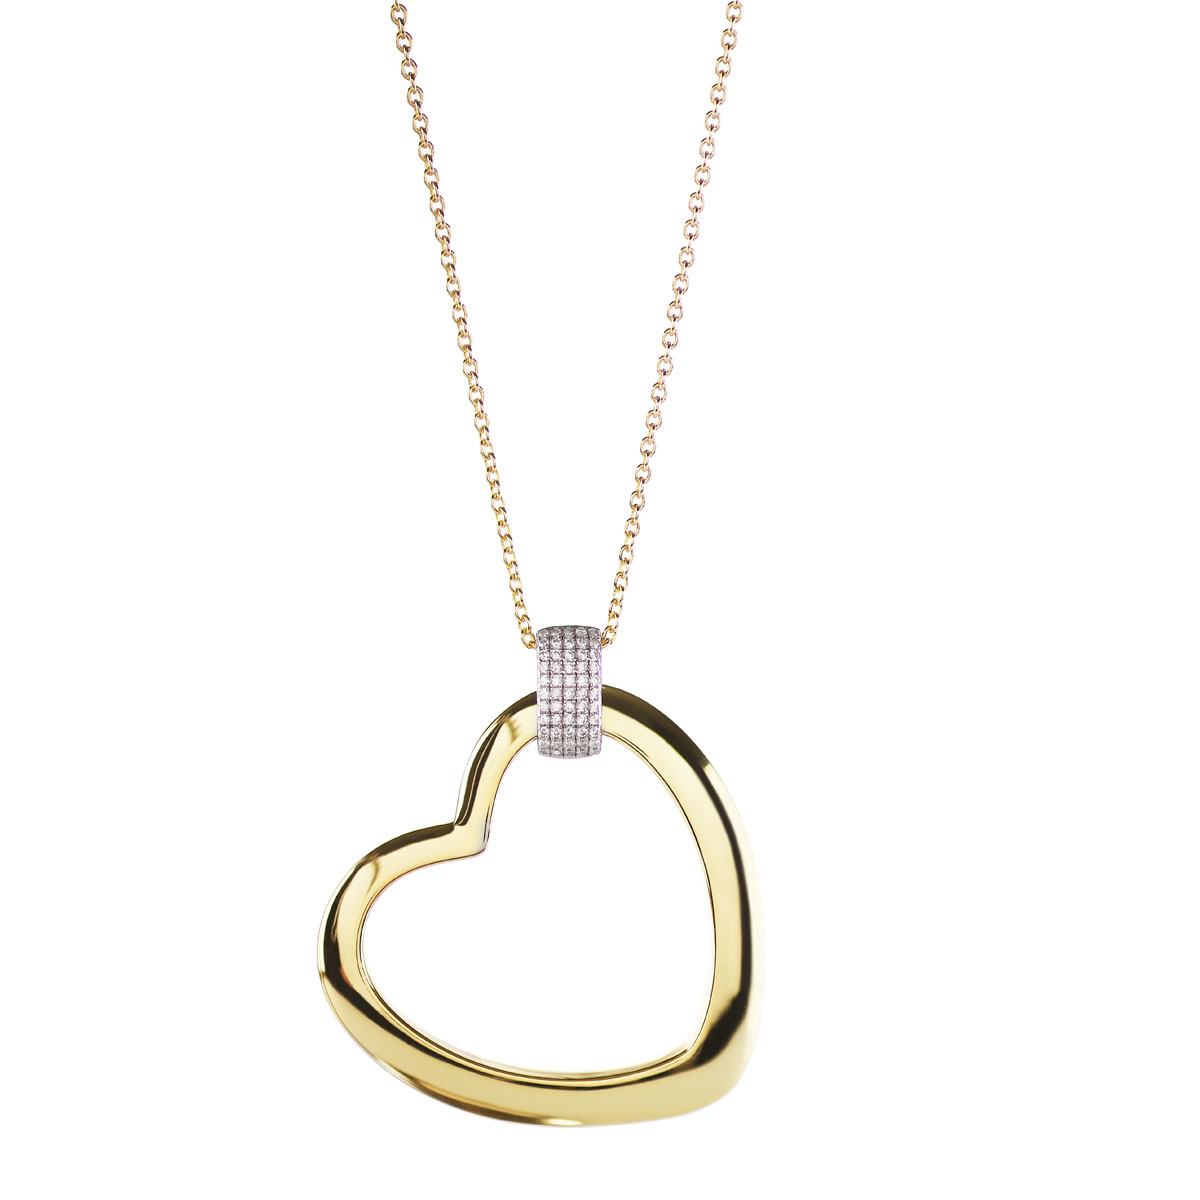 Cashs Ireland, Donna 18k Gold and Crystal Heart Pendant Necklace